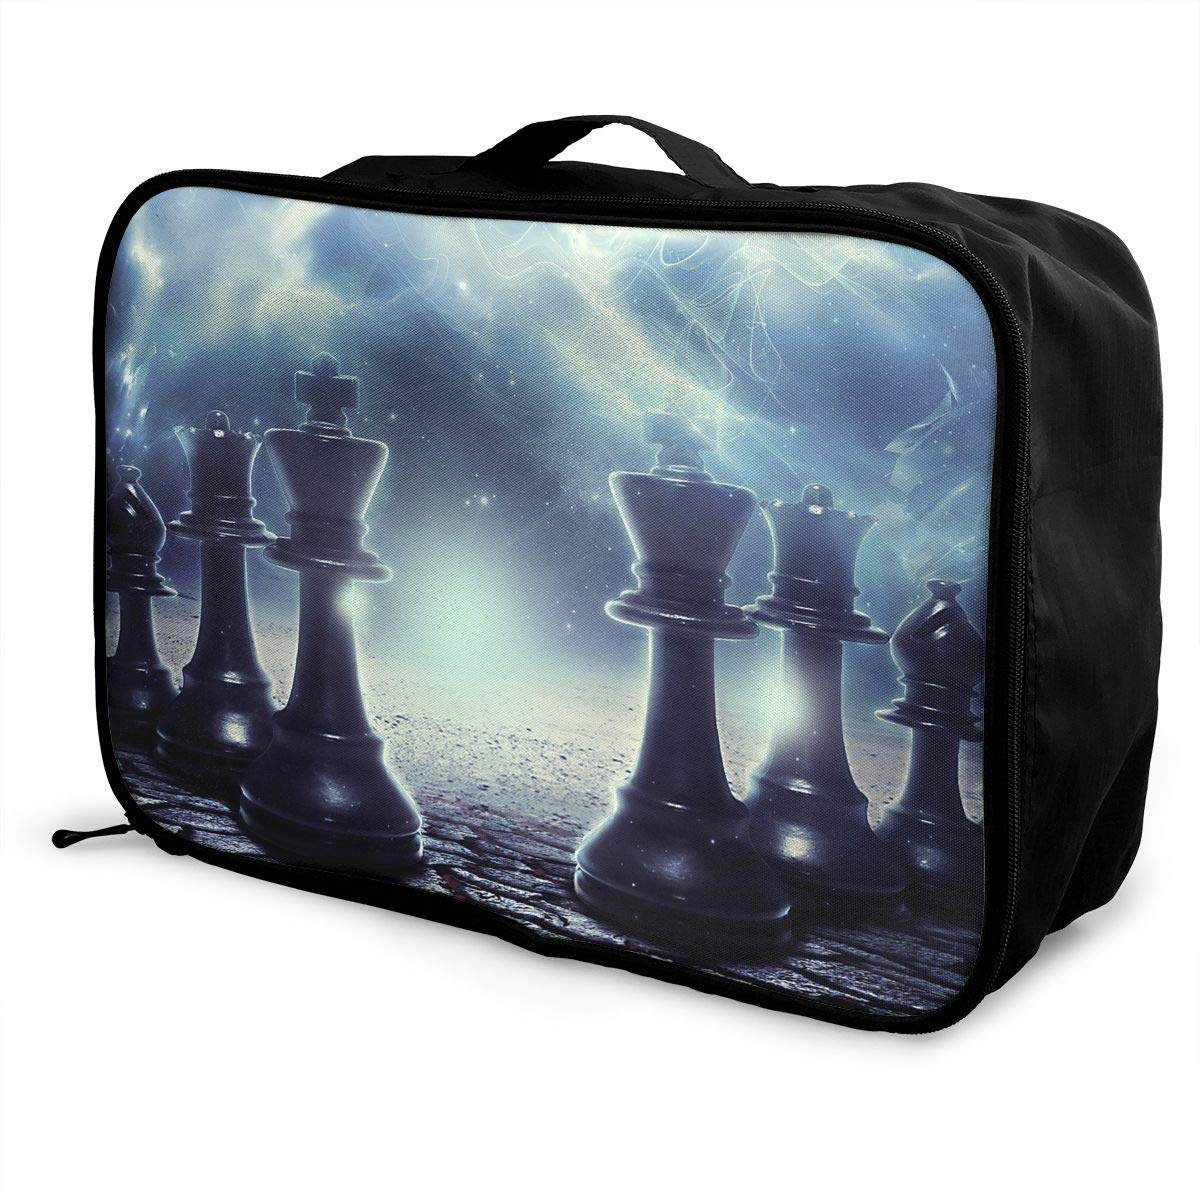 Travel Luggage Duffle Bag Lightweight Portable Handbag Chess Print Large Capacity Waterproof Foldable Storage Tote